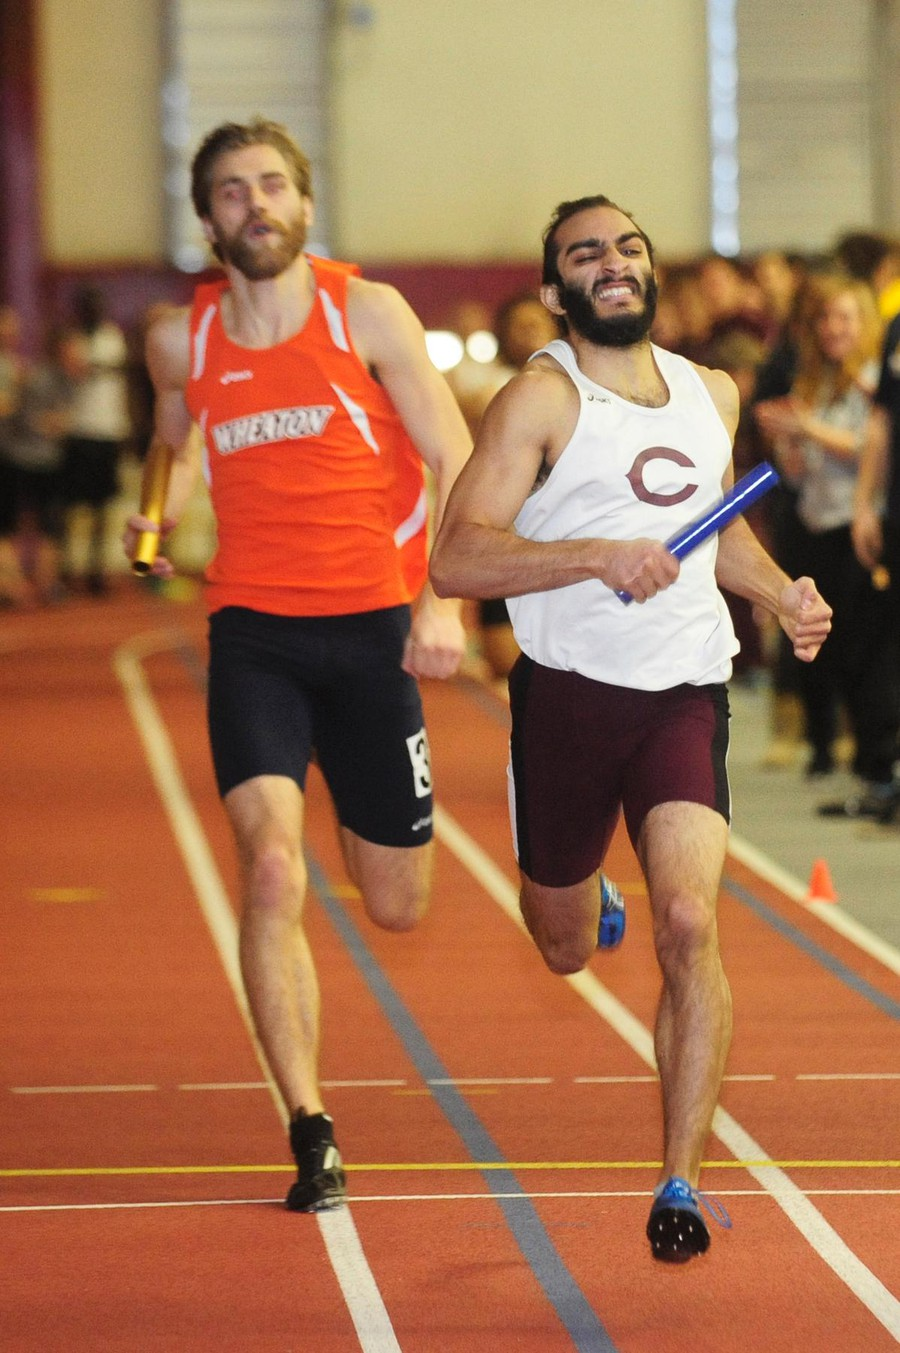 Fourth-year Jatan Anand sprints past his opponents and towards the finish line.